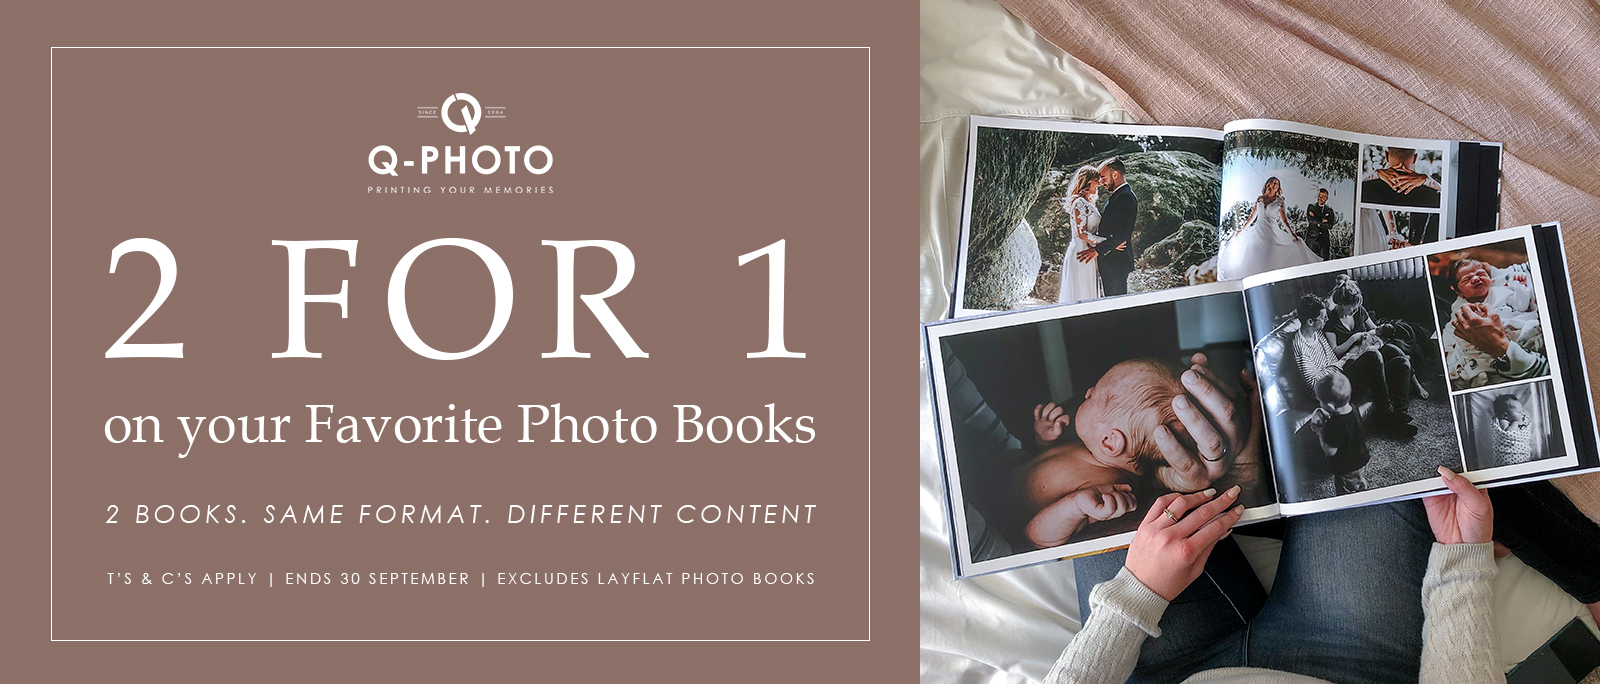 2 For 1 Photo Book More Deal